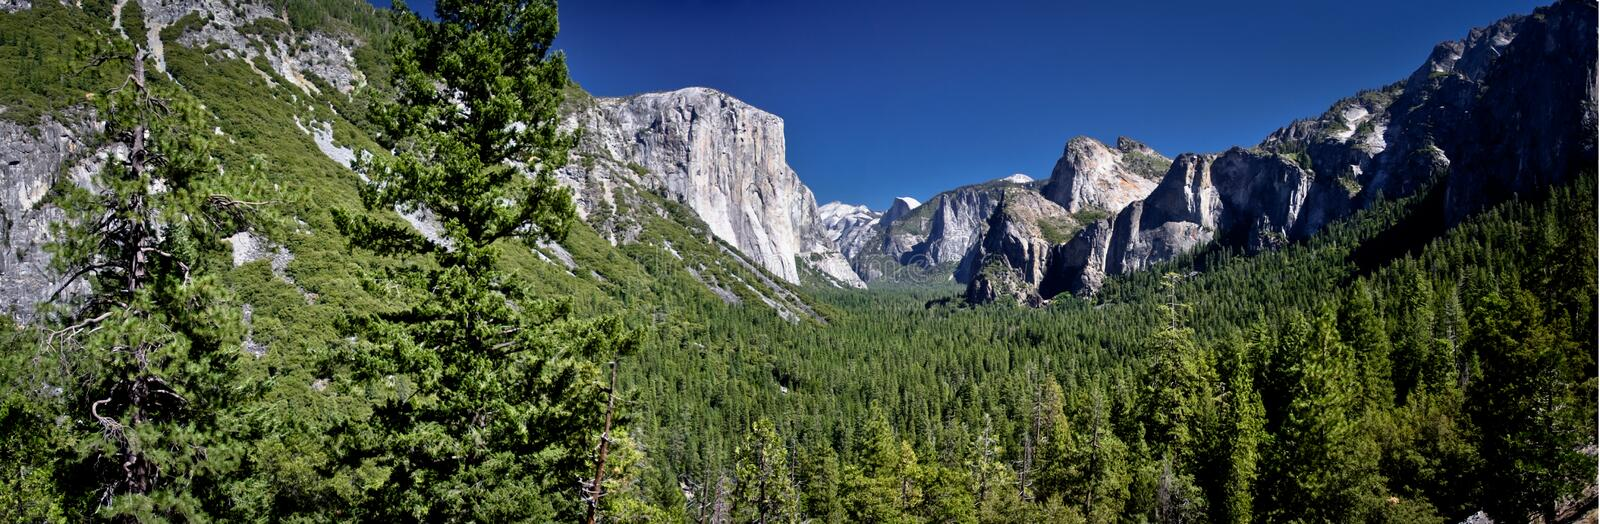 Download Yosemite Valley stock photo. Image of united, tree, forest - 19670546